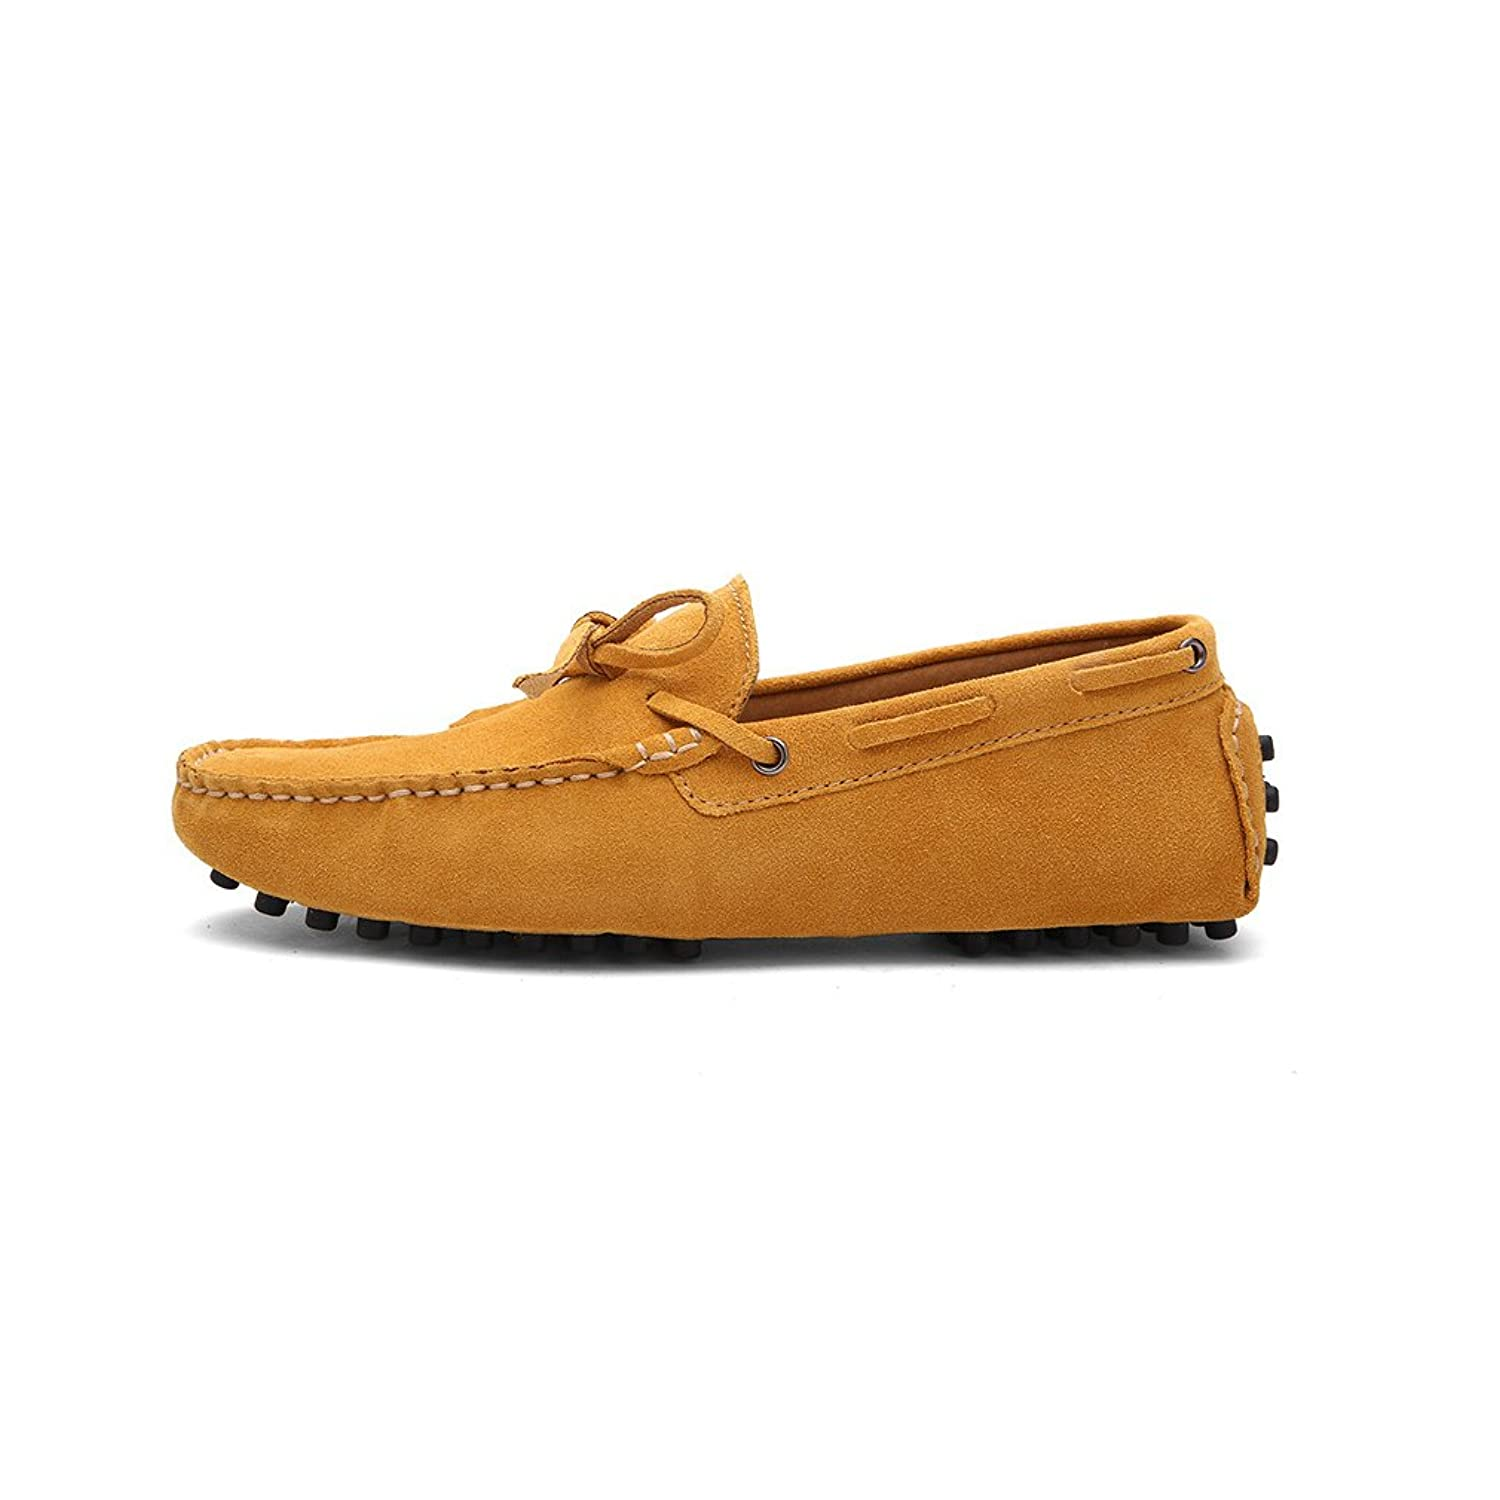 480b72d0568 Kyle Walsh Pa Spring Casual Retro Classic Ankle Suede Indoor/Outdoor ...